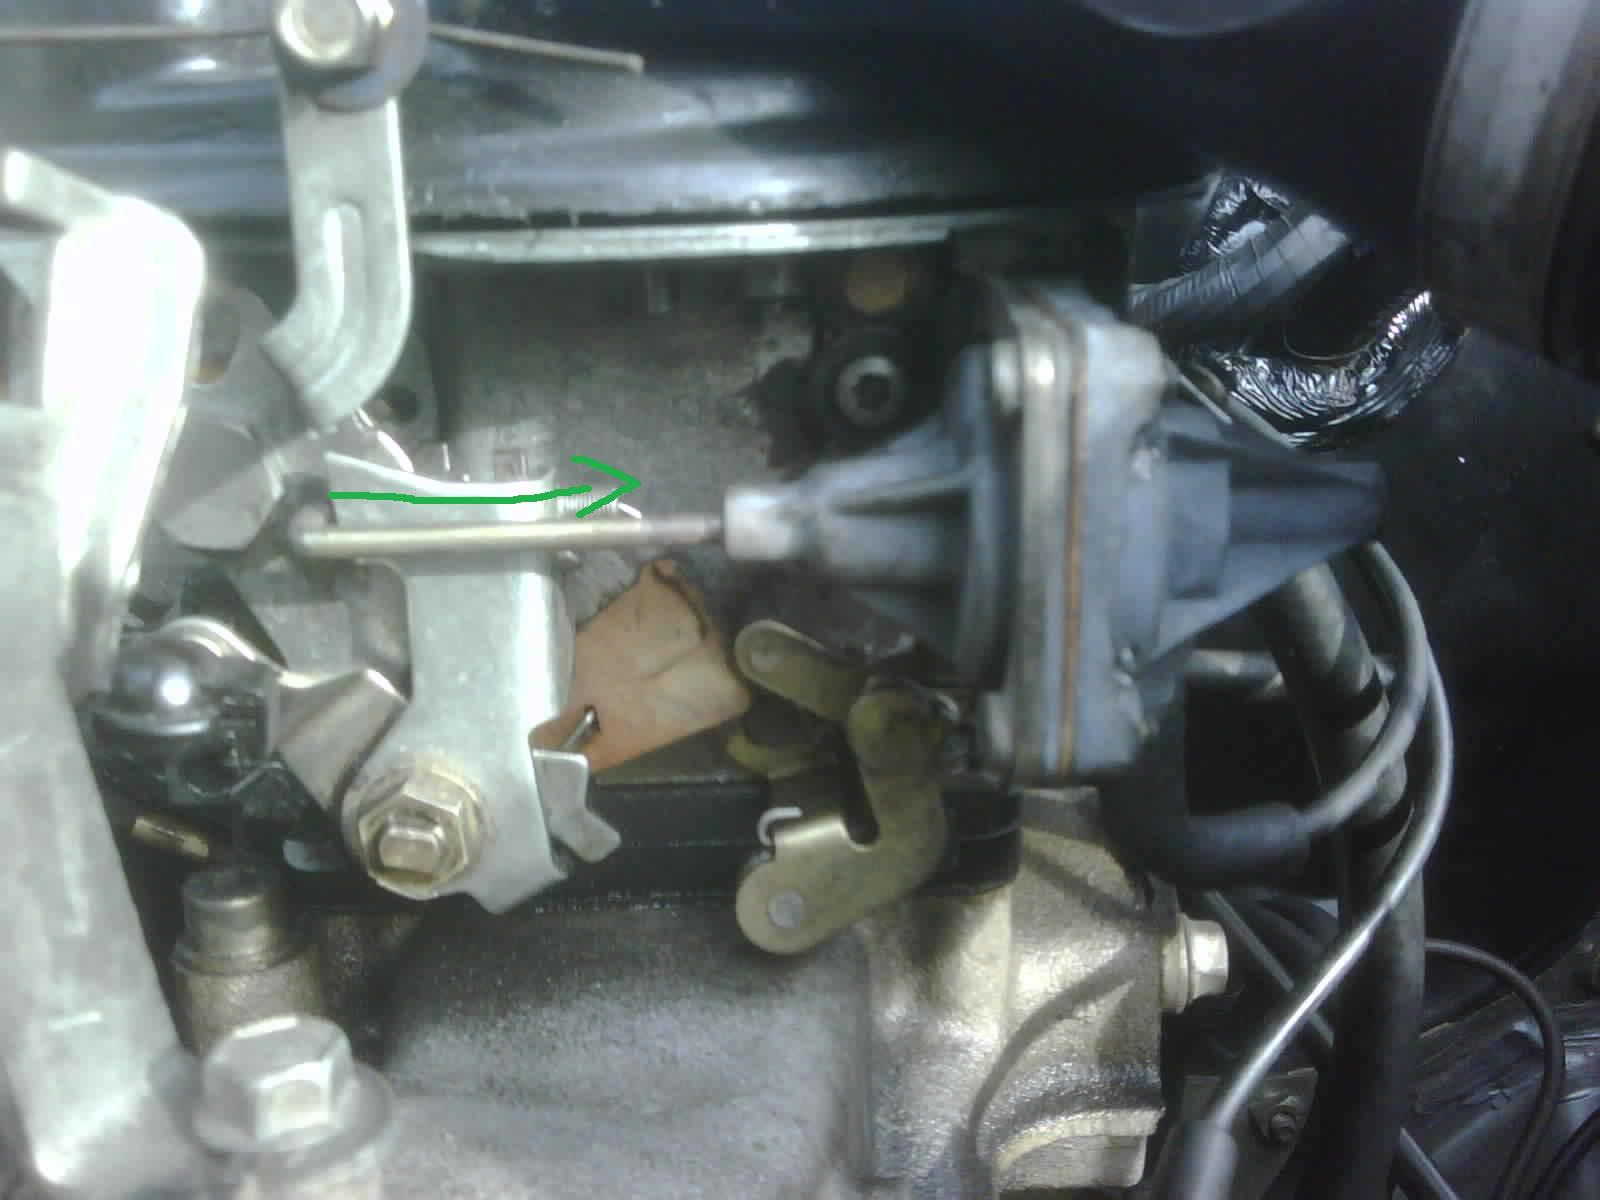 Volvo 240 Live Solex Cisac Idle Air Compensation Wiring Harness Guide Kjetorg To Move In The Handle